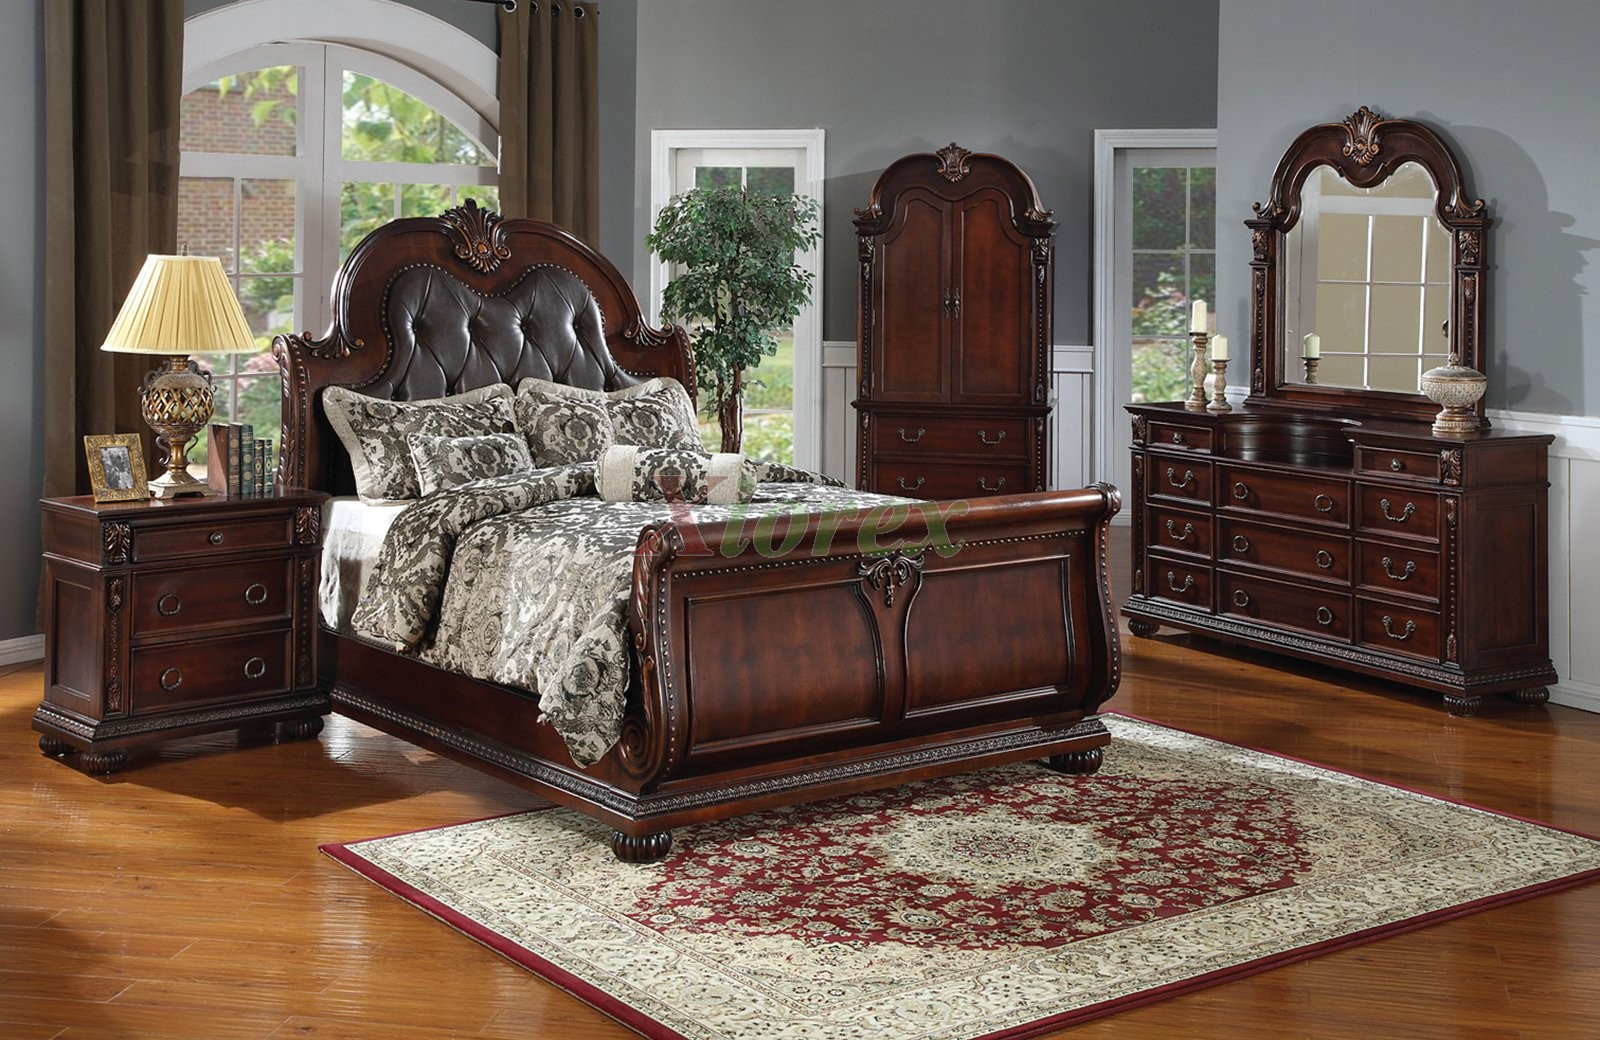 sleigh bedroom furniture set with leather headboard 119 xiorex